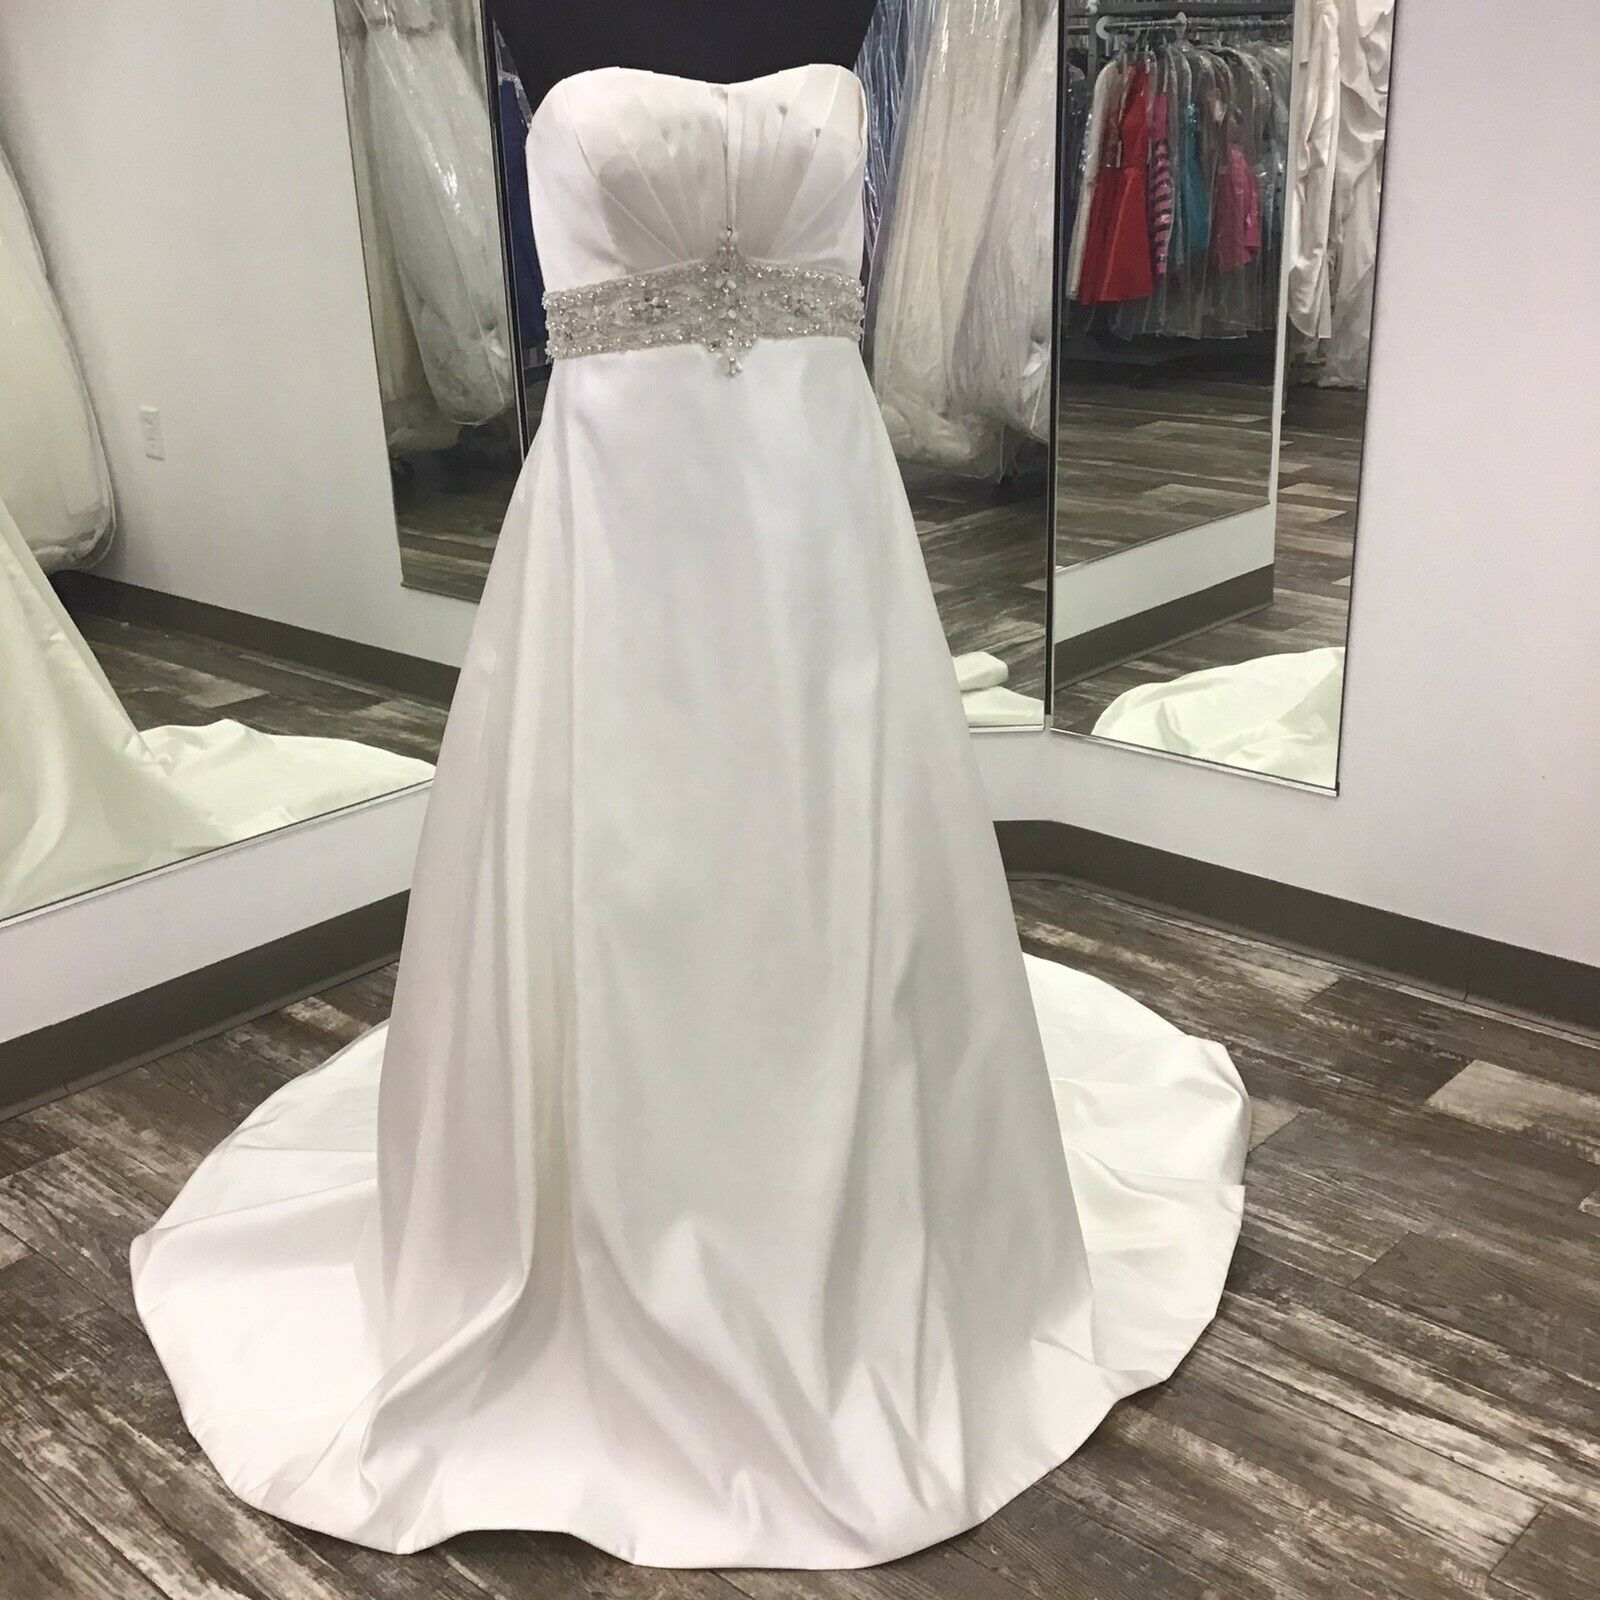 New Private Label BE131 Wedding Gown Ivory Satin Size 12